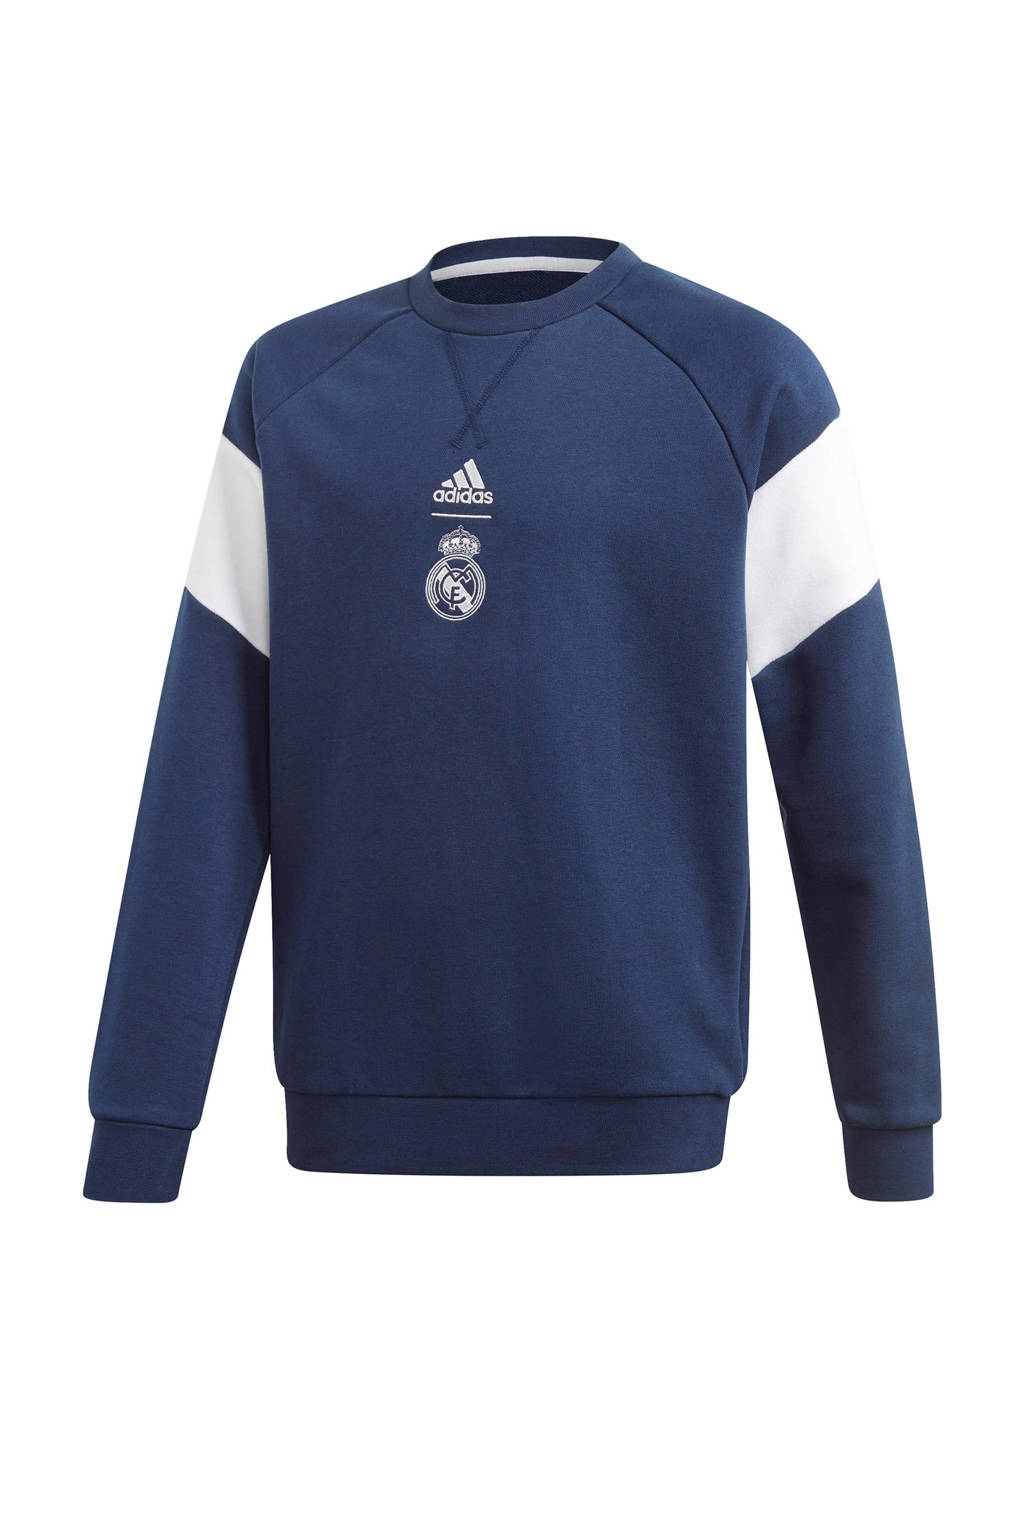 adidas Junior Real Madrid voetbalsweater, Donkerblauw/wit